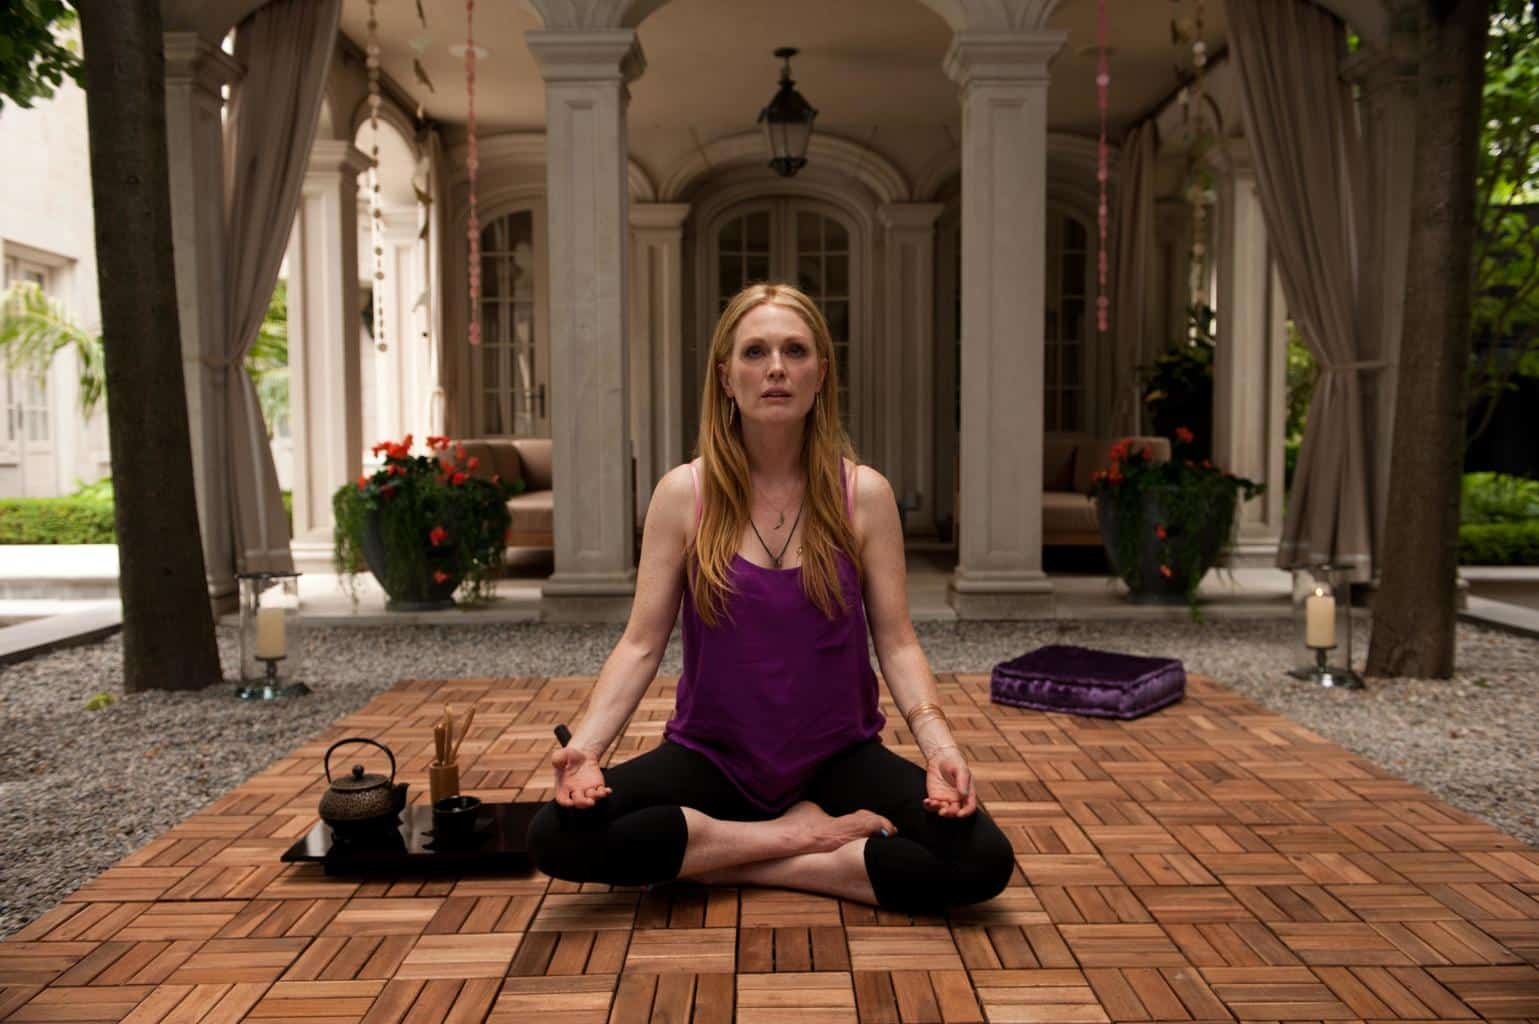 film reviews | movies | features | BRWC The BRWC Review: Maps To The Stars